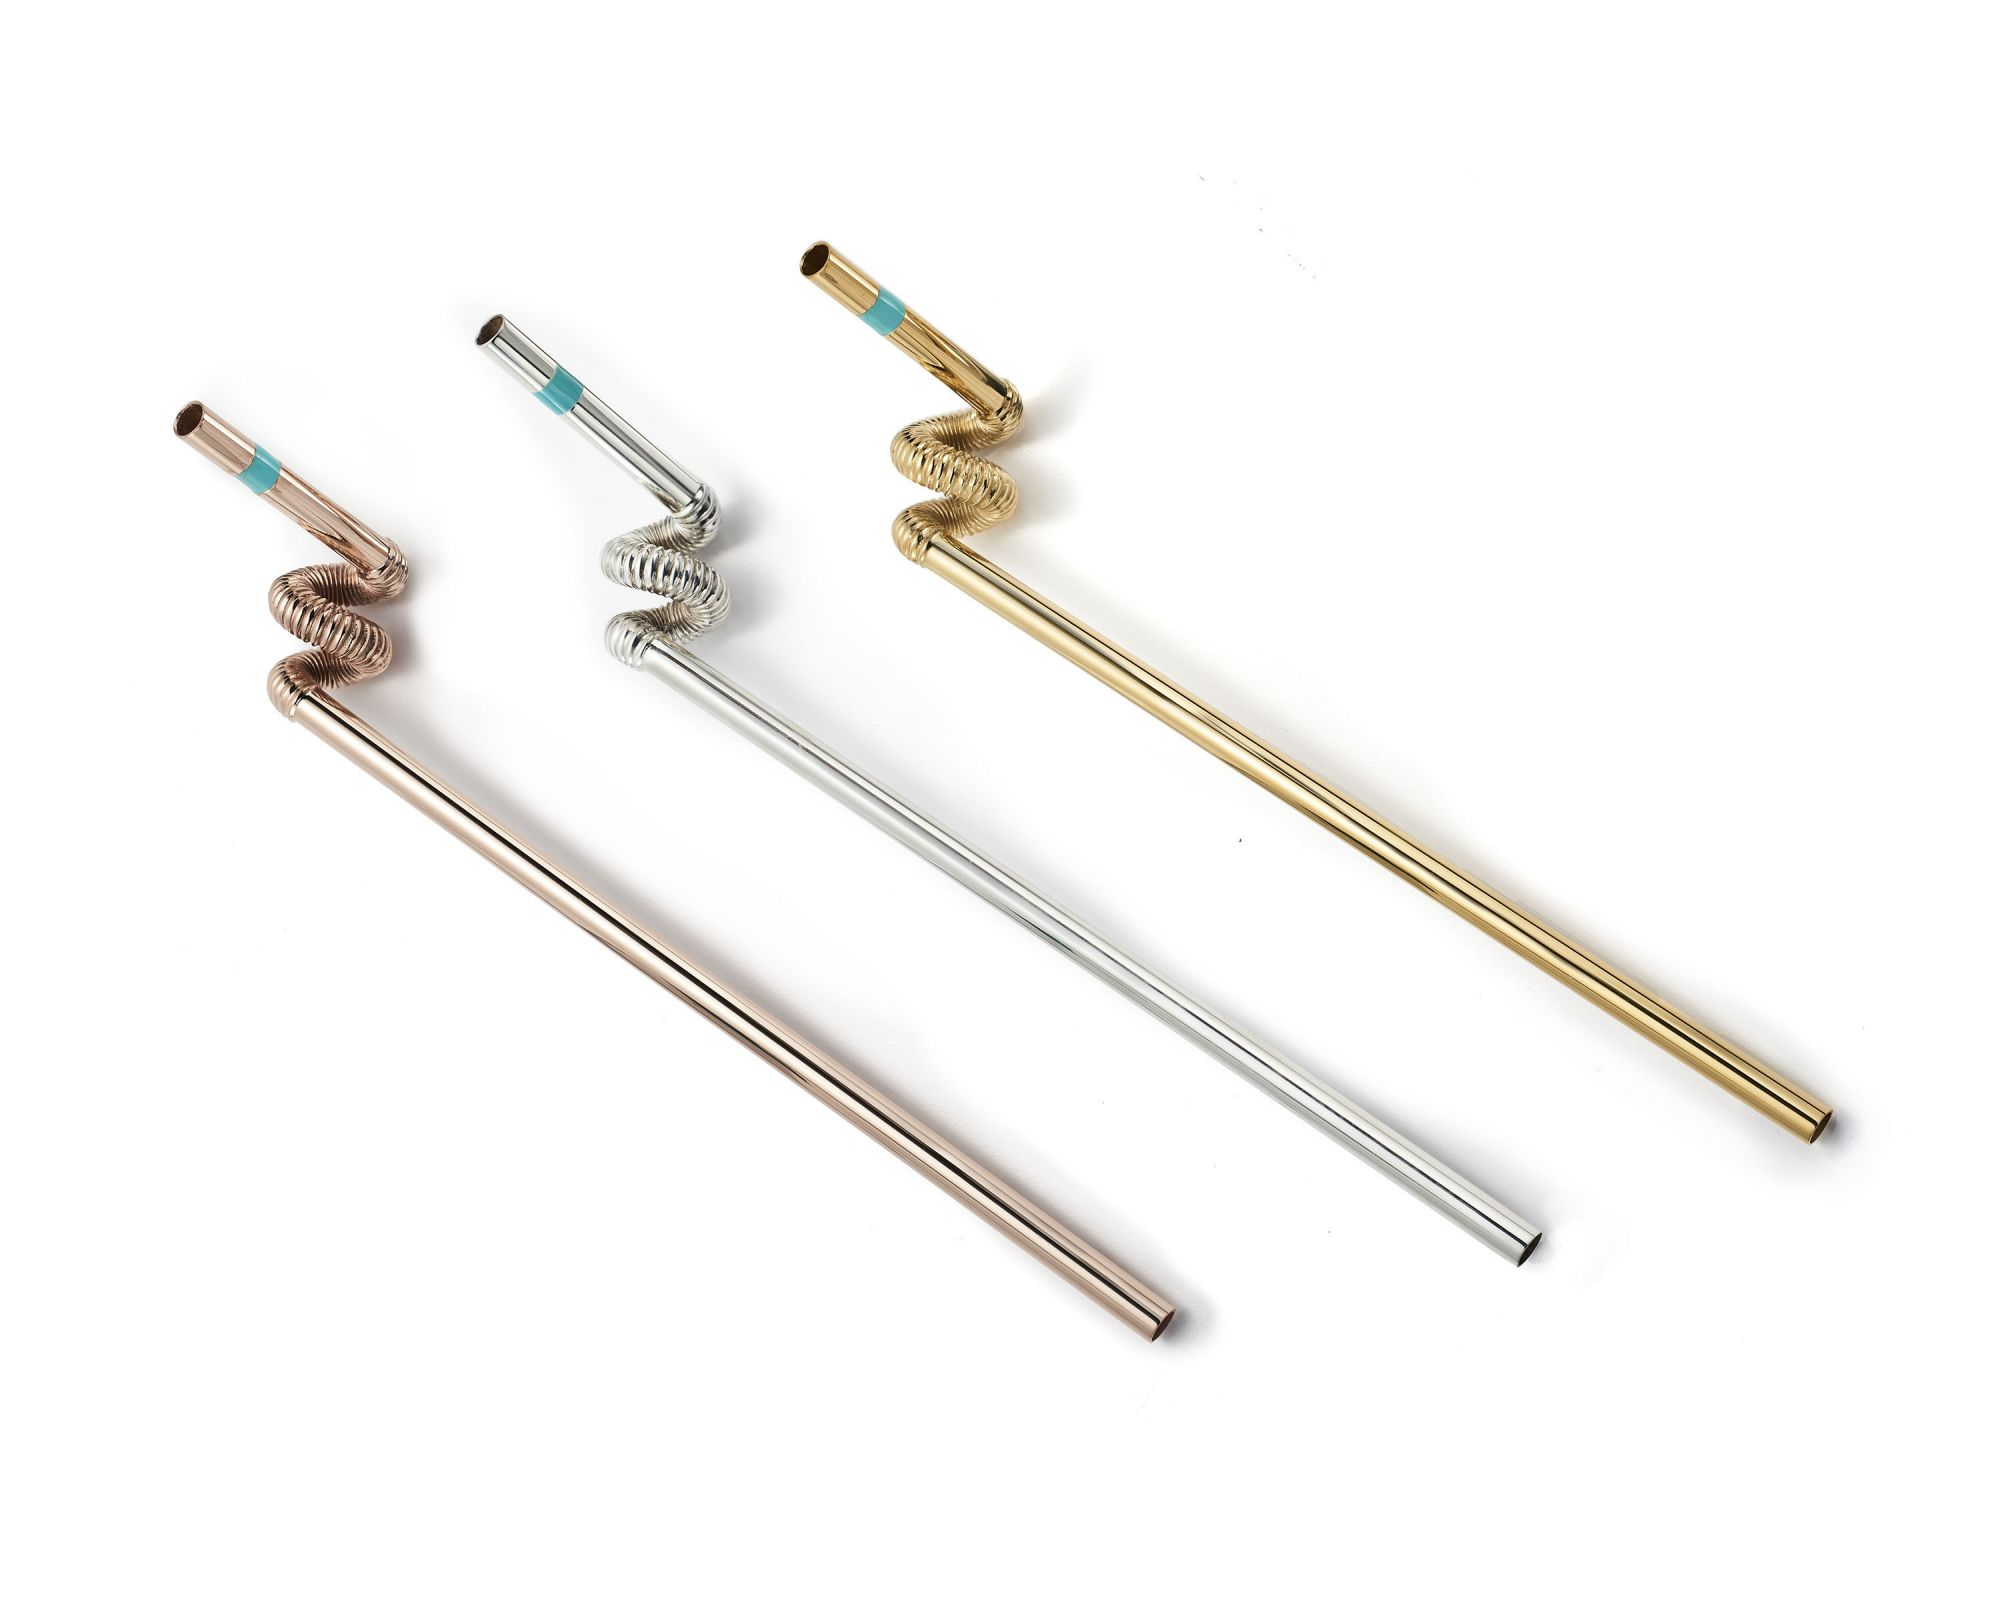 Say No To Plastic With Tiffany's Posh Reusable Straws | Hong